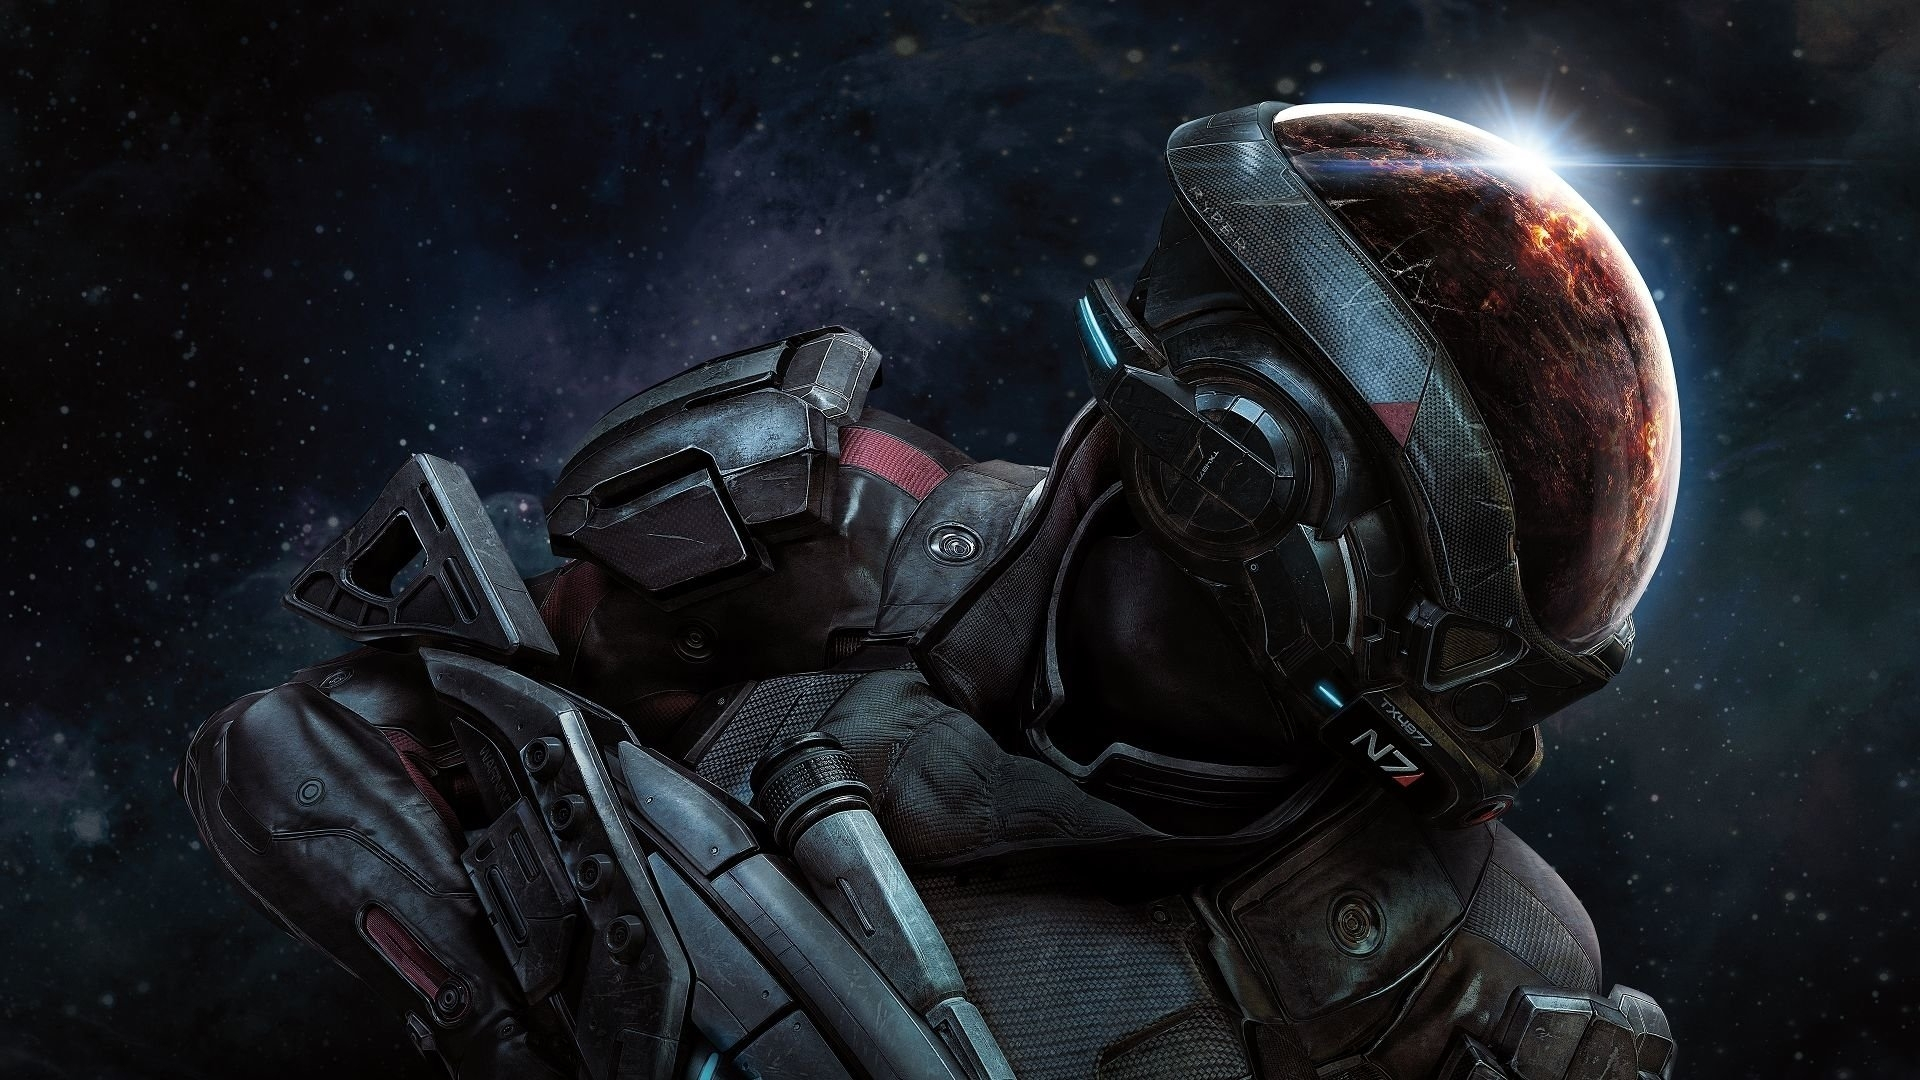 1054 mass effect hd wallpapers | background images - wallpaper abyss